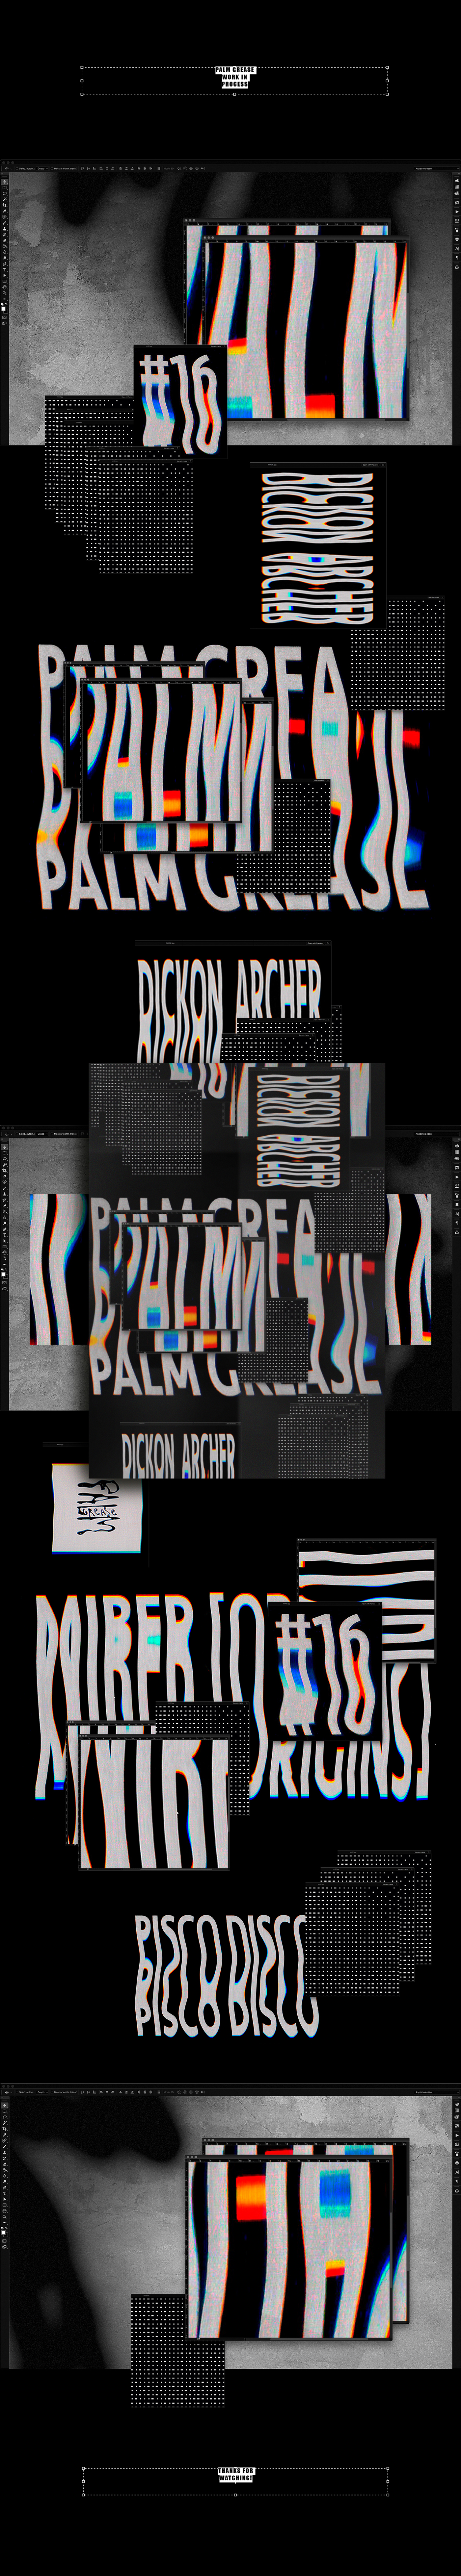 Palm Grease Event poster barcelona 𝖮𝗇𝗅𝗂𝗇𝖾